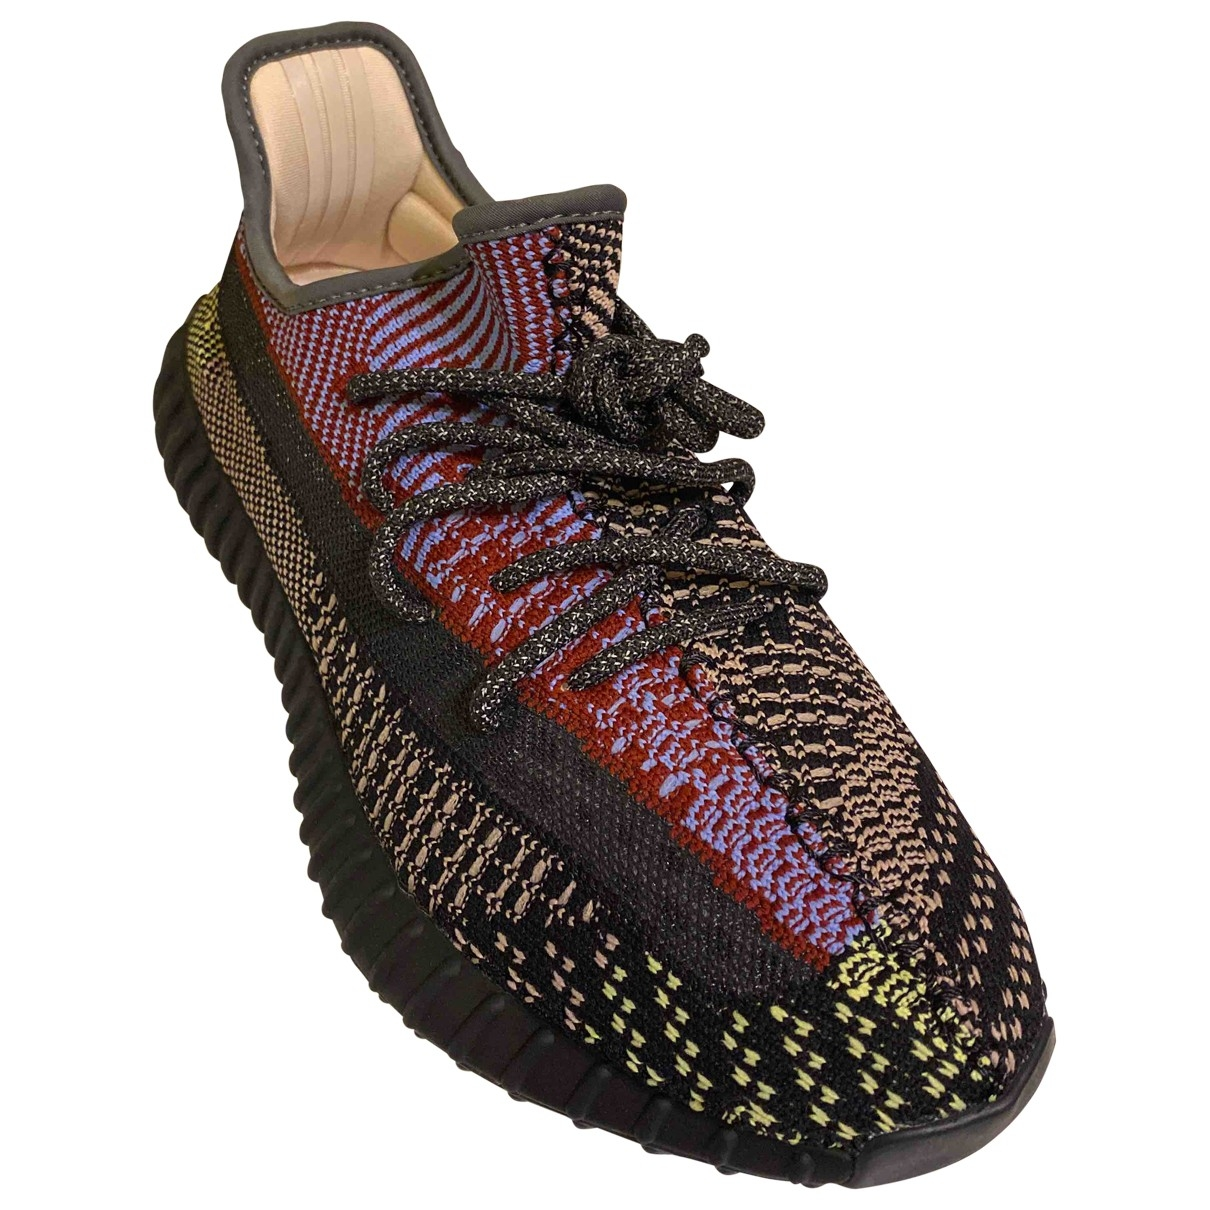 Yeezy X Adidas - Baskets Boost 350 V2 pour homme - multicolore